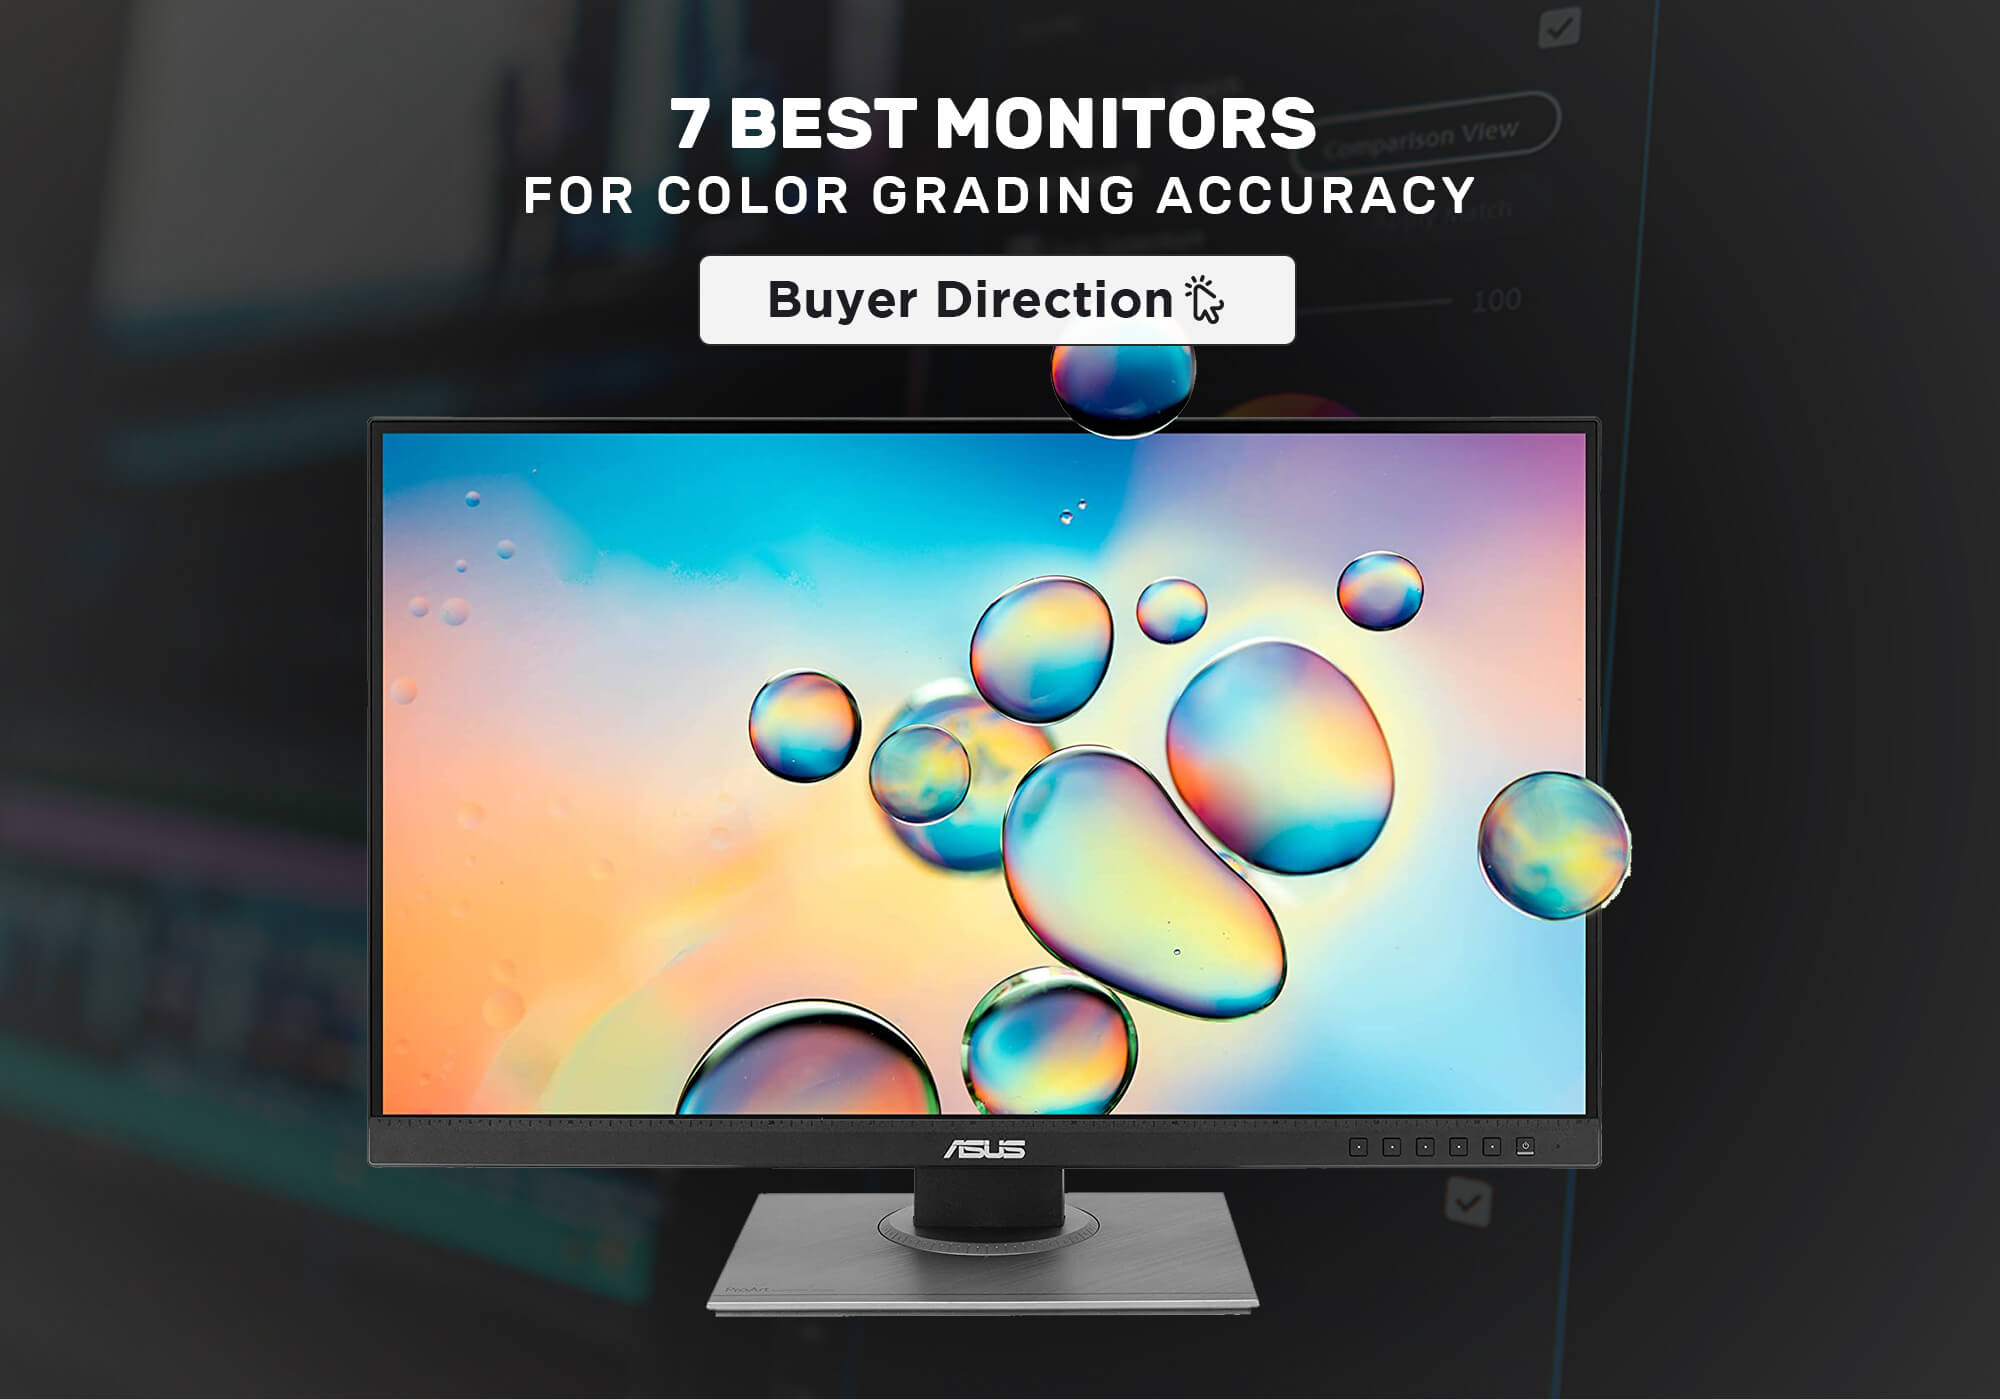 7 Best Monitors for Color Grading Accuracy in 2021